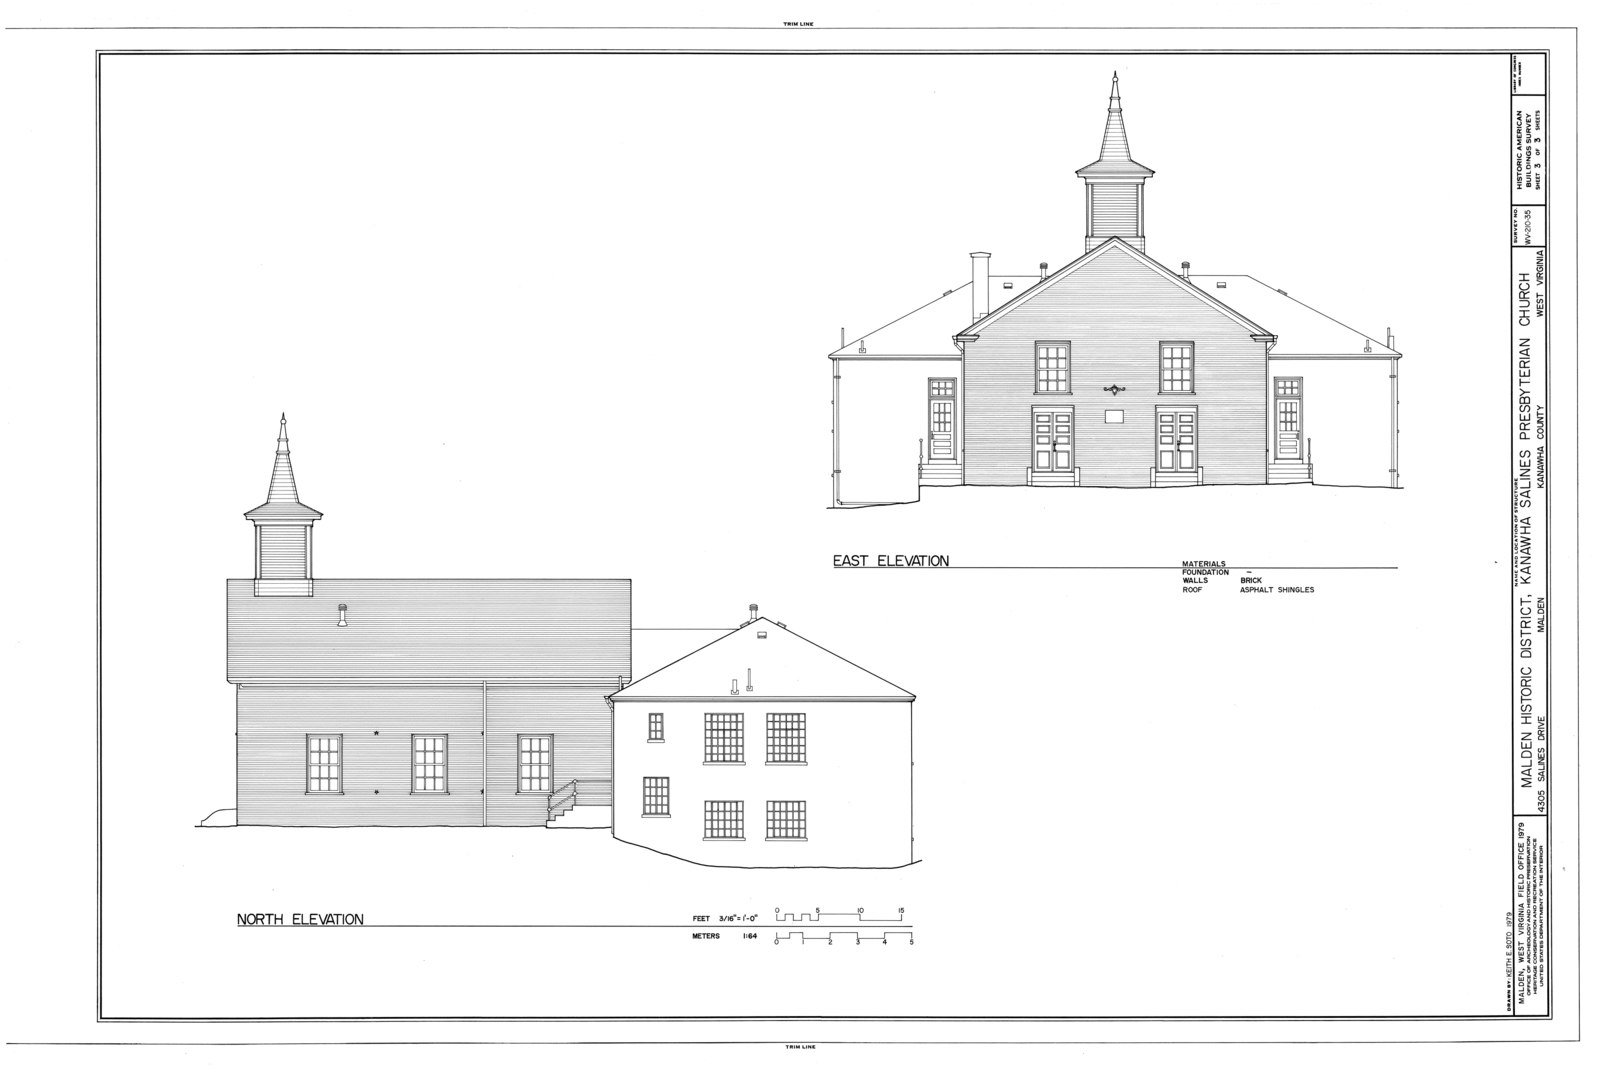 Architectural drawing of the church